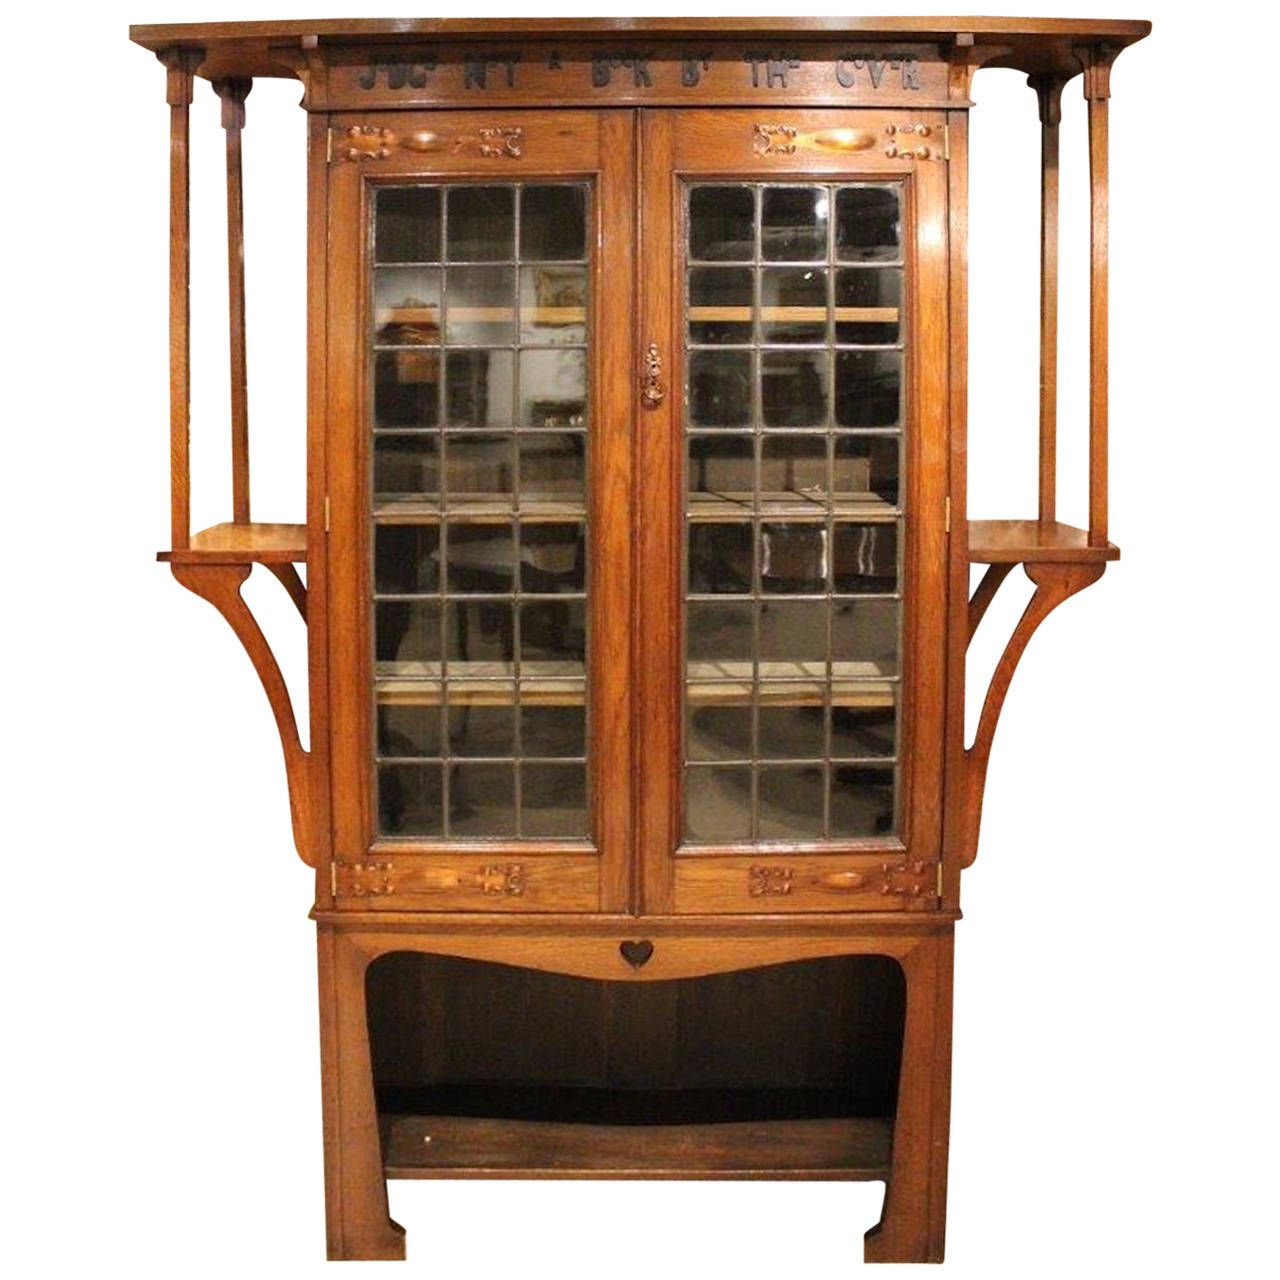 Antique arts and crafts furniture - Oak Arts Crafts Liberty S Style Bookcase With Motto